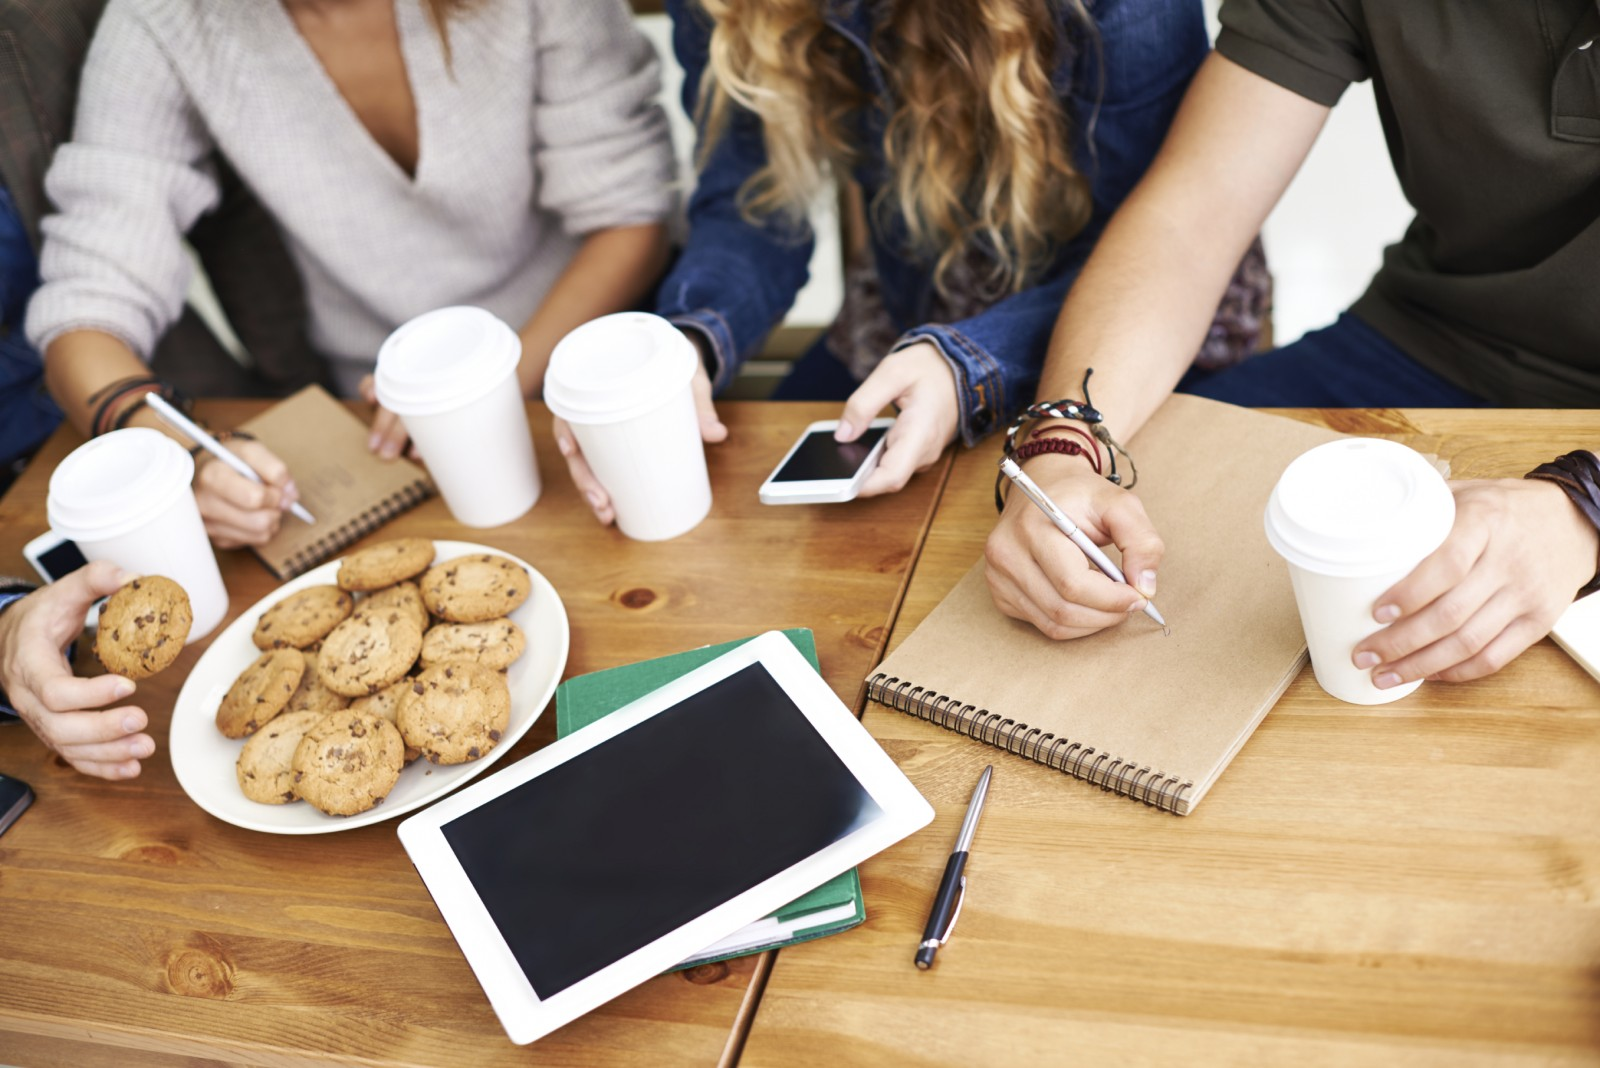 6 Reasons Cookie-Based Marketing Has Gone Stale